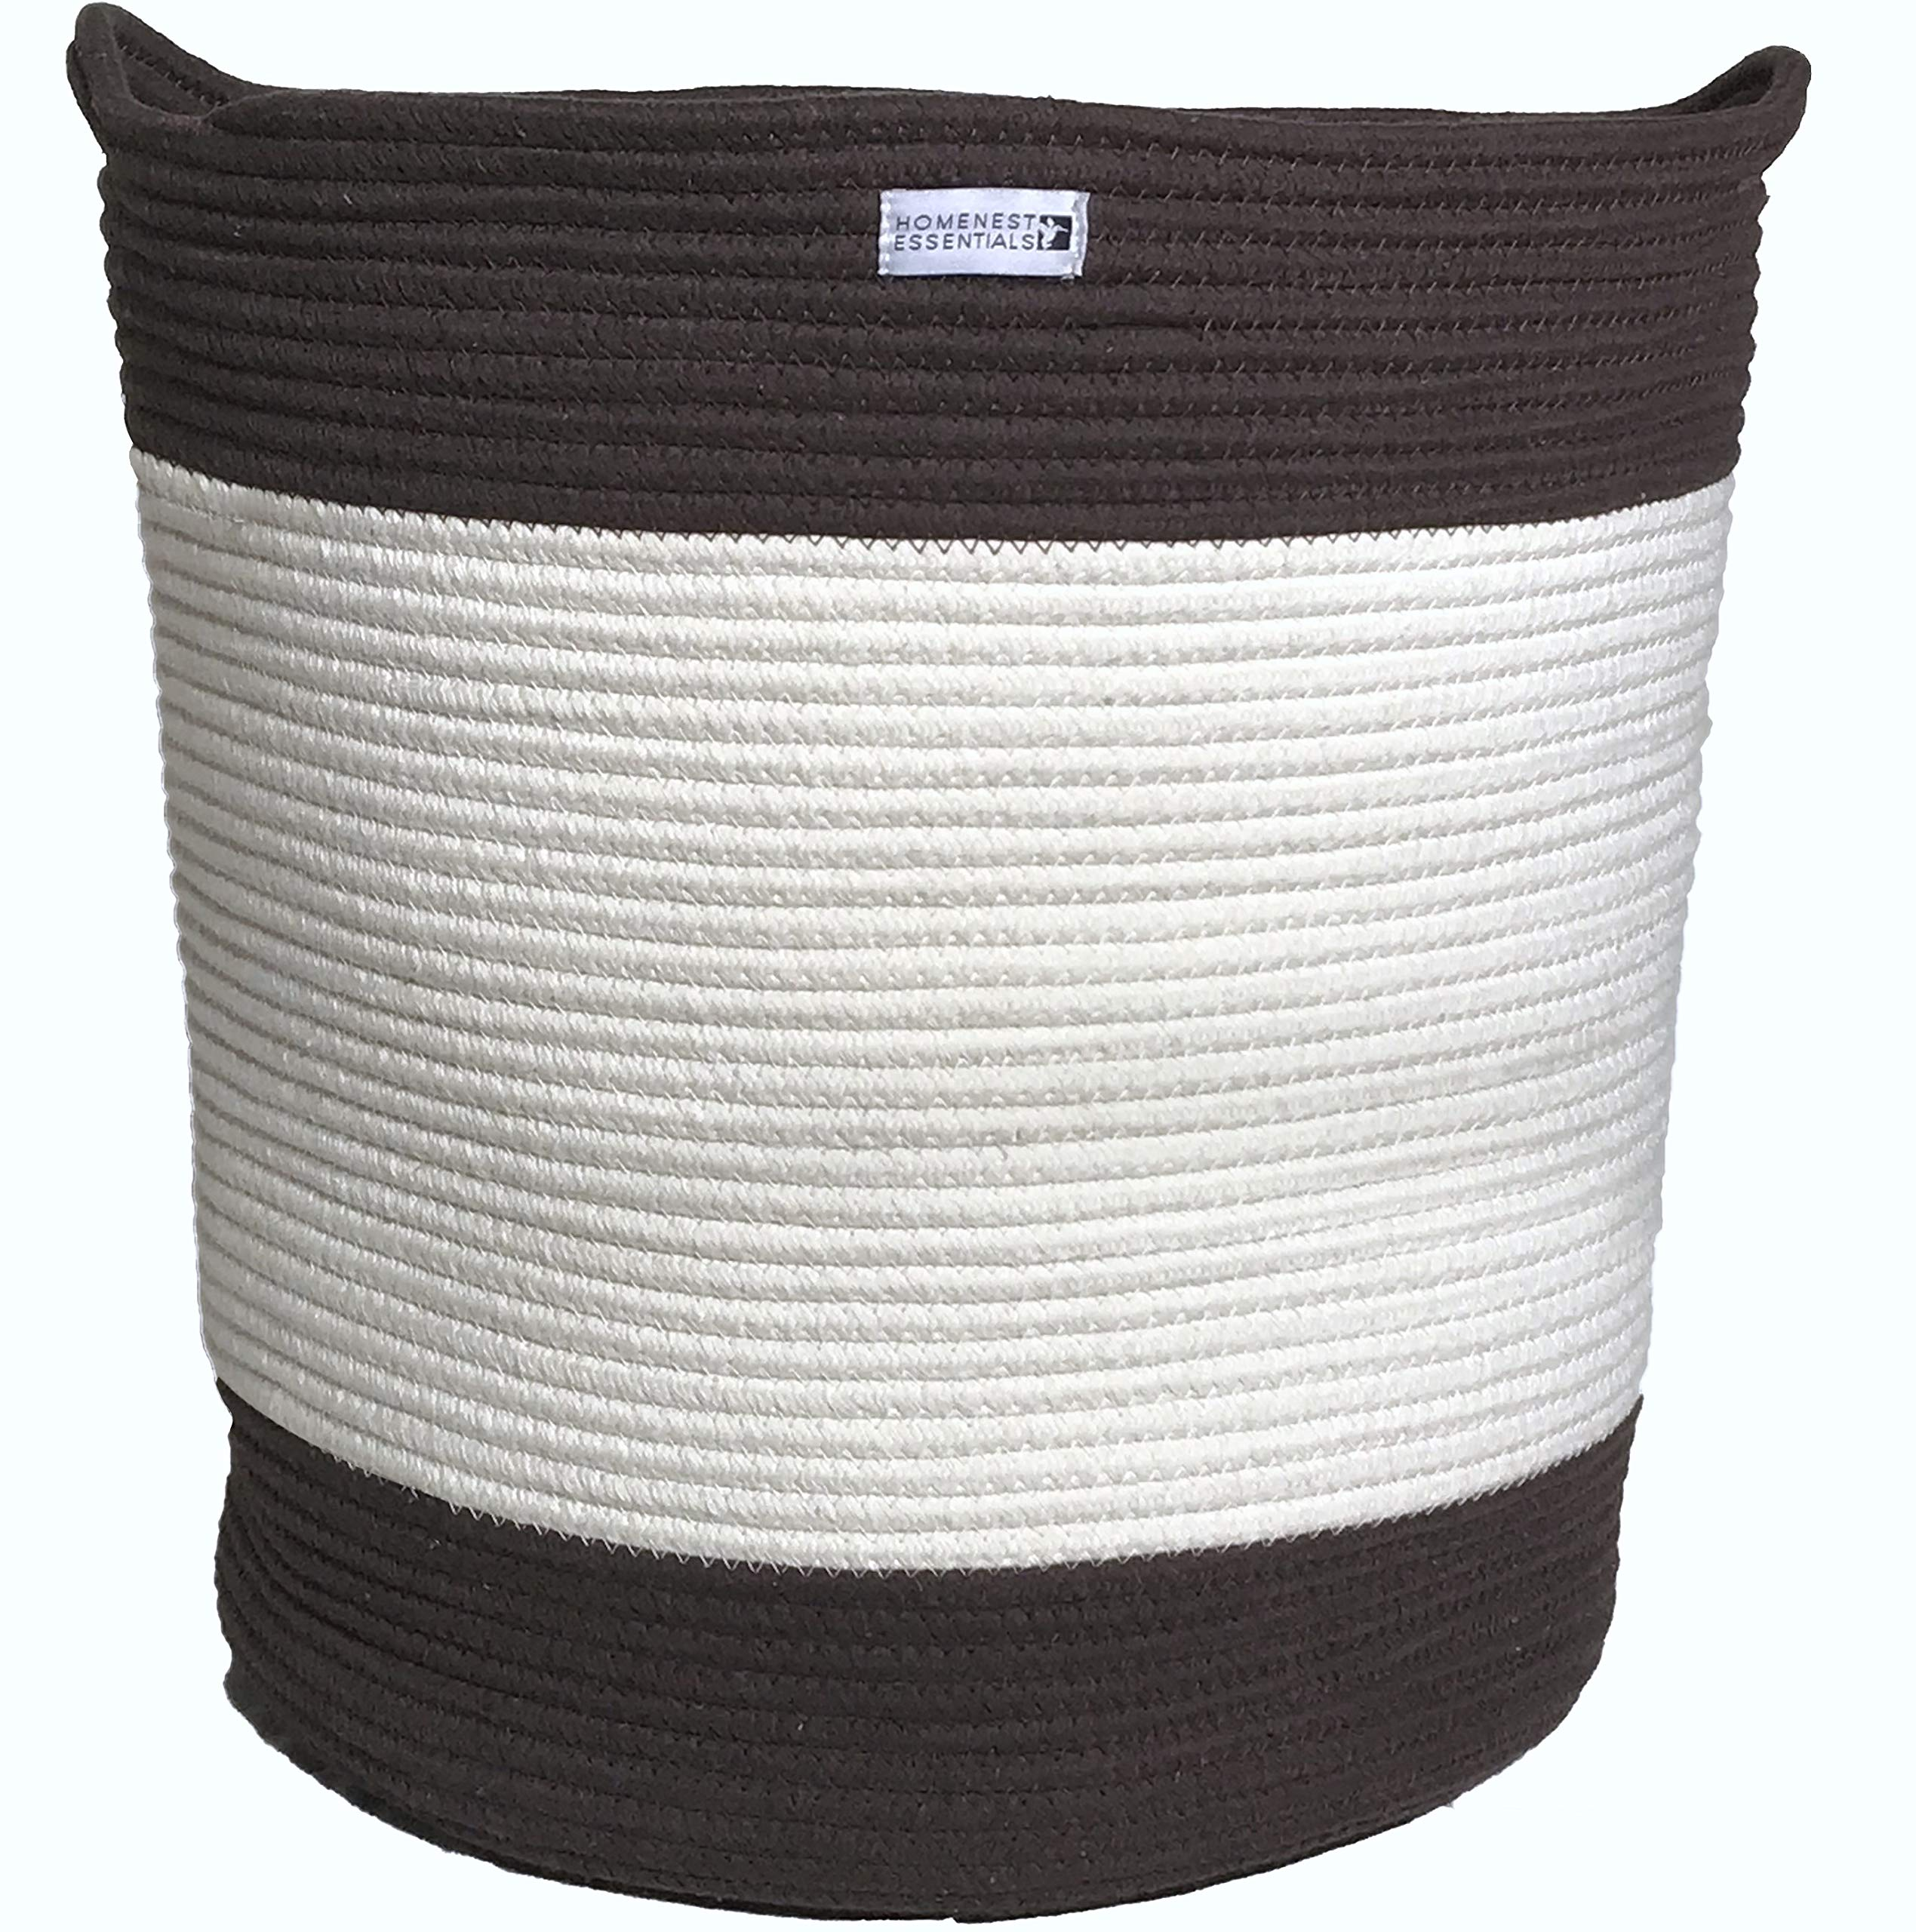 """HOMENEST ESSENTIALS Large Cotton Rope Storage Basket & Container 18"""" x 16"""" 